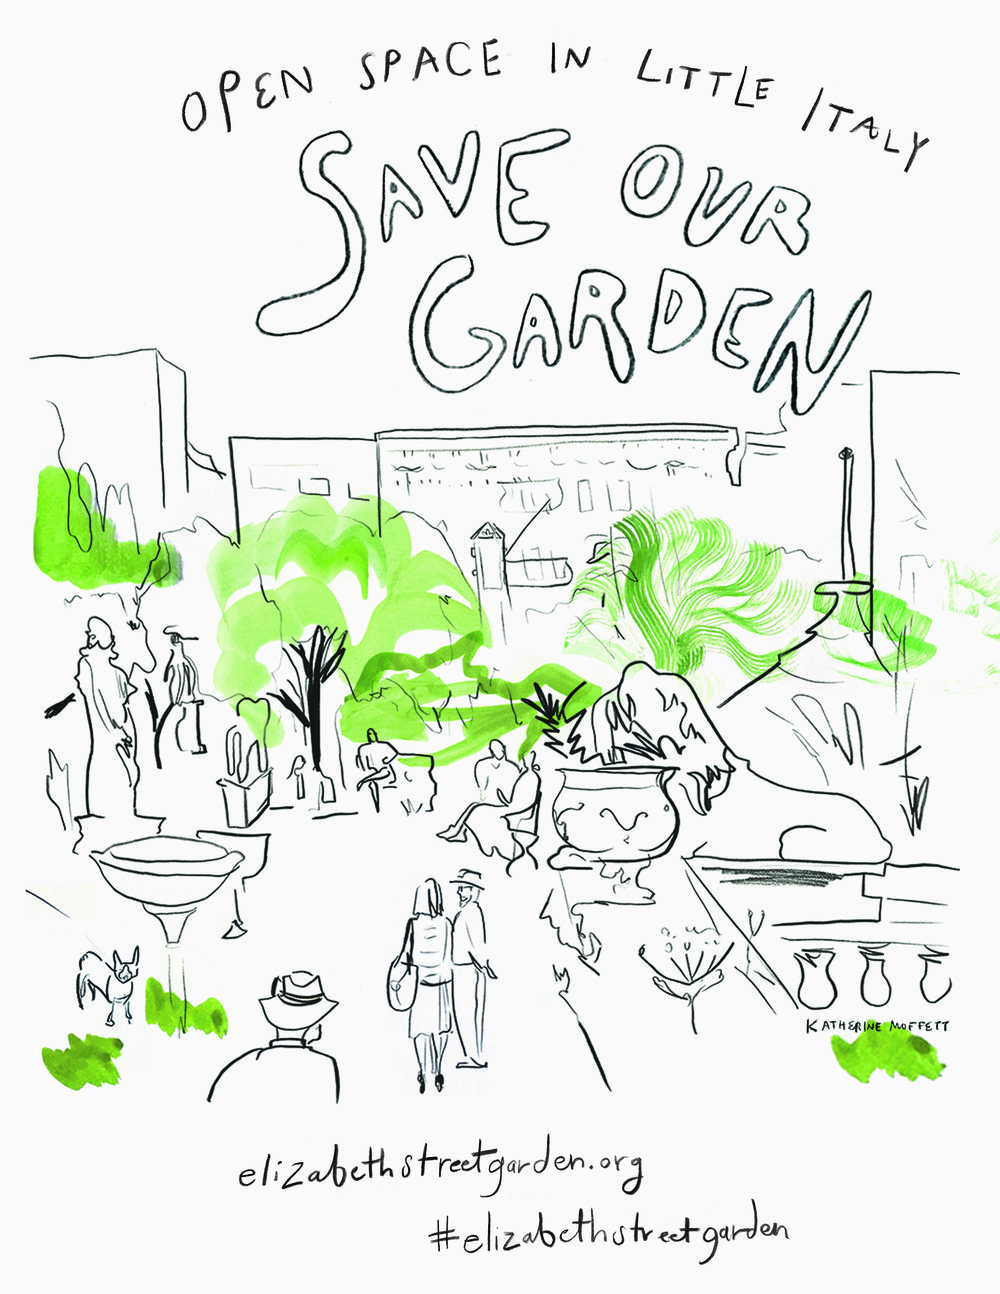 Save the Elizabeth Street Garden - You are invited to display this card in your shop window or instagram!